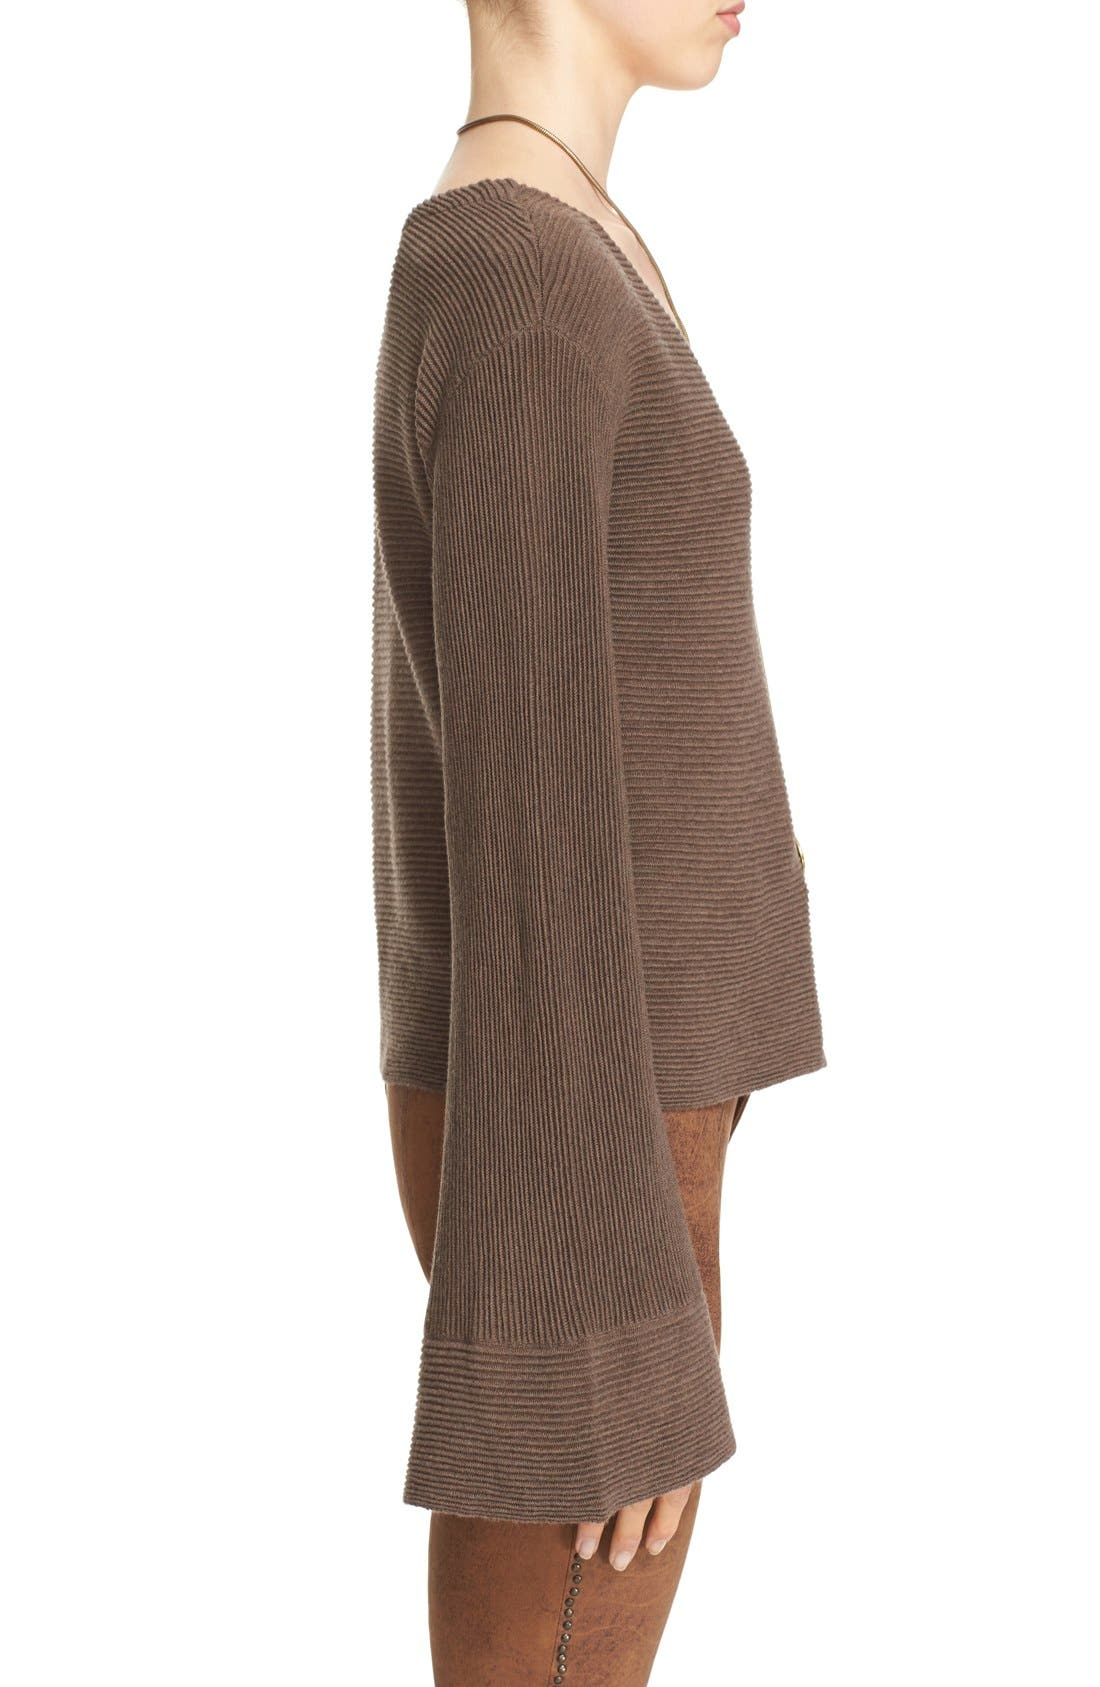 'Starman' Rib Knit Pullover,                             Alternate thumbnail 6, color,                             200